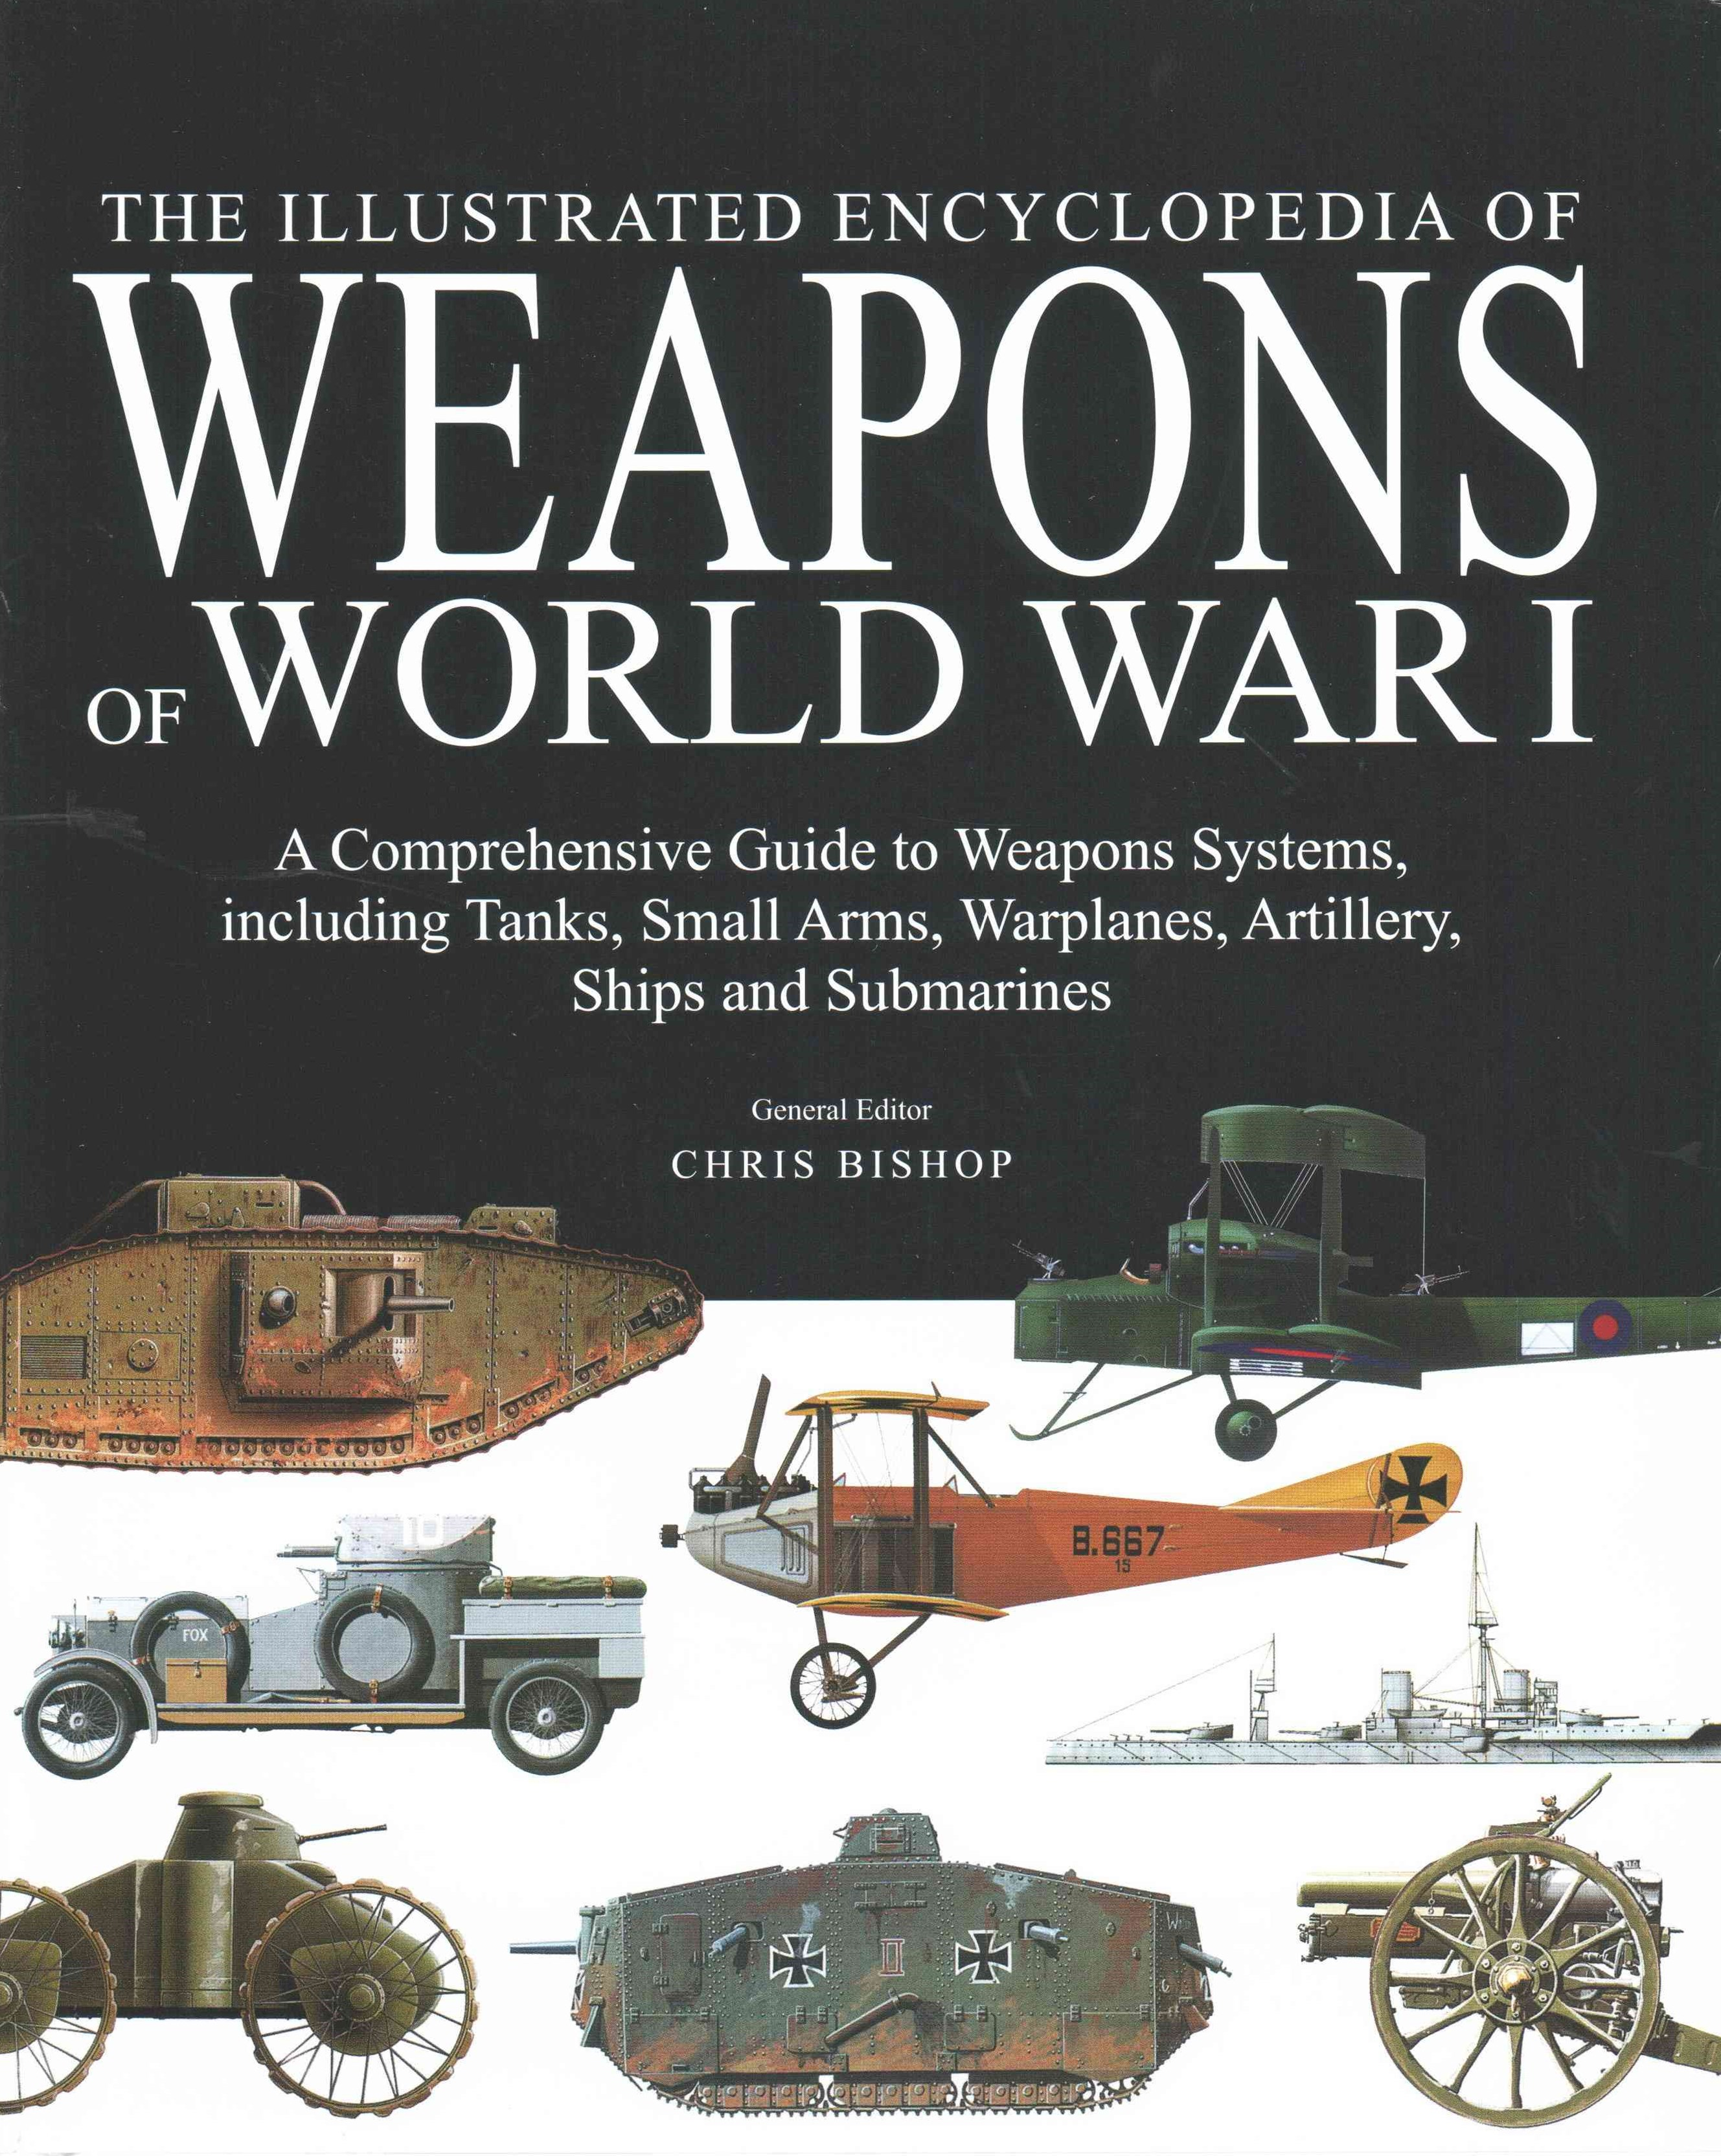 Illustrated Encyclopedia of Weapons of World War I